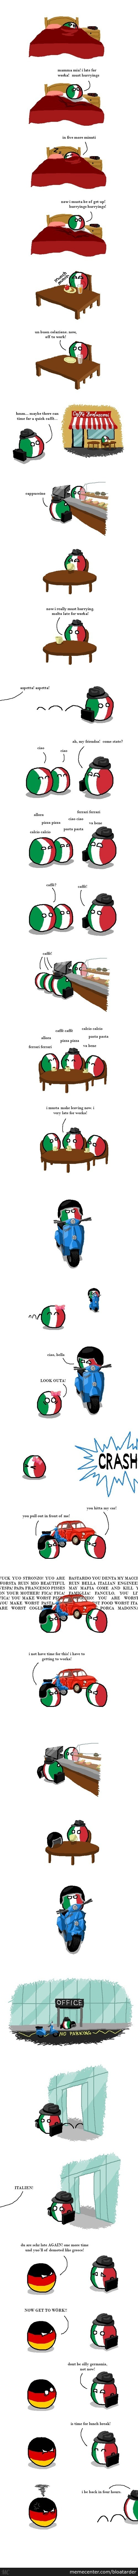 Italy Working